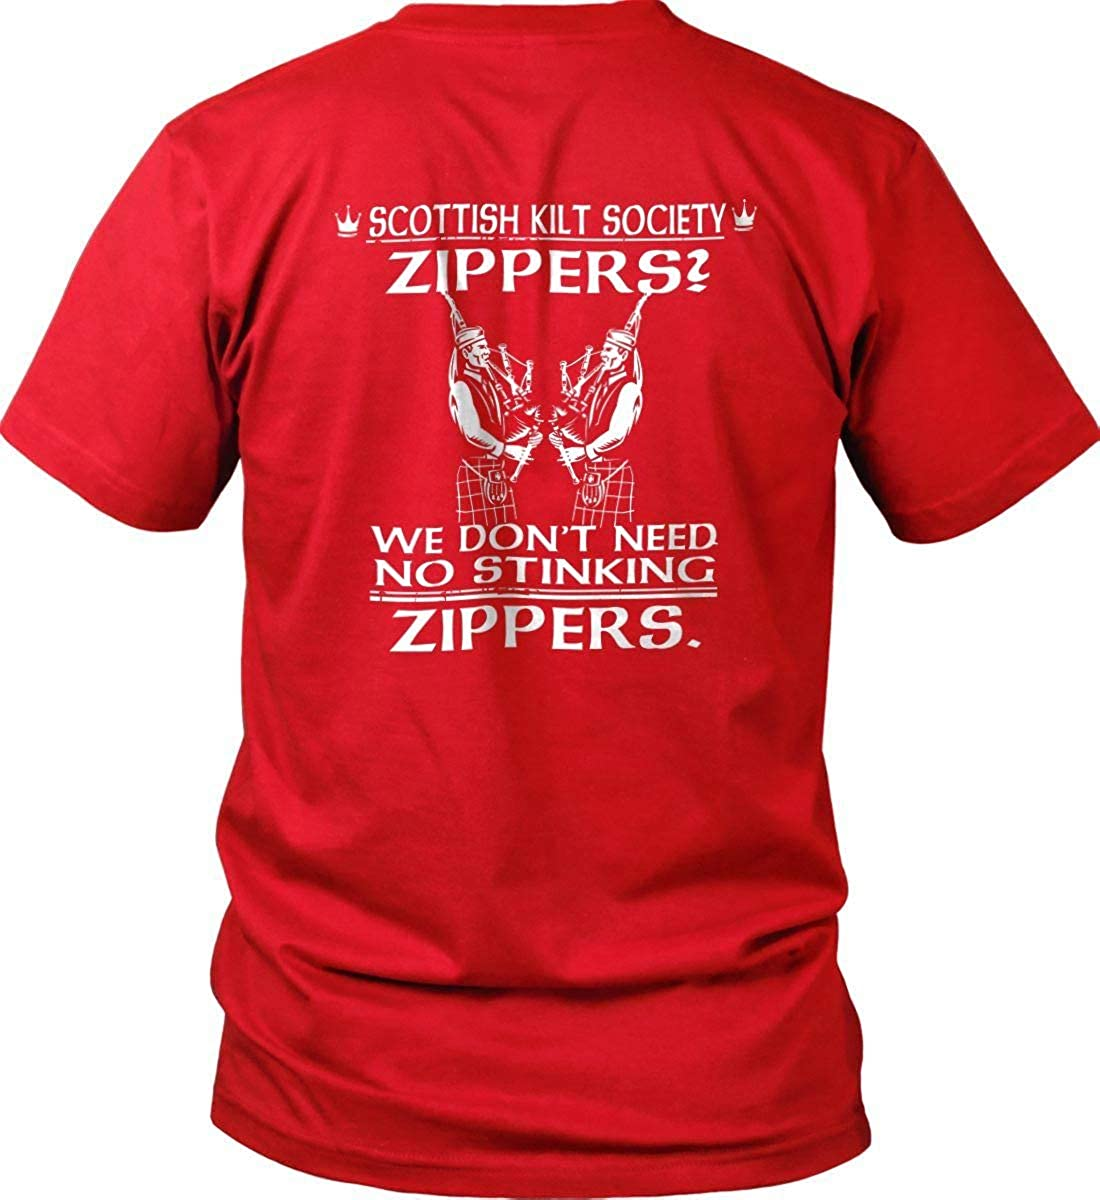 Celtic T-Shirt Made in USA T-Shi. Zippers We Dont Need to stinking Zippers